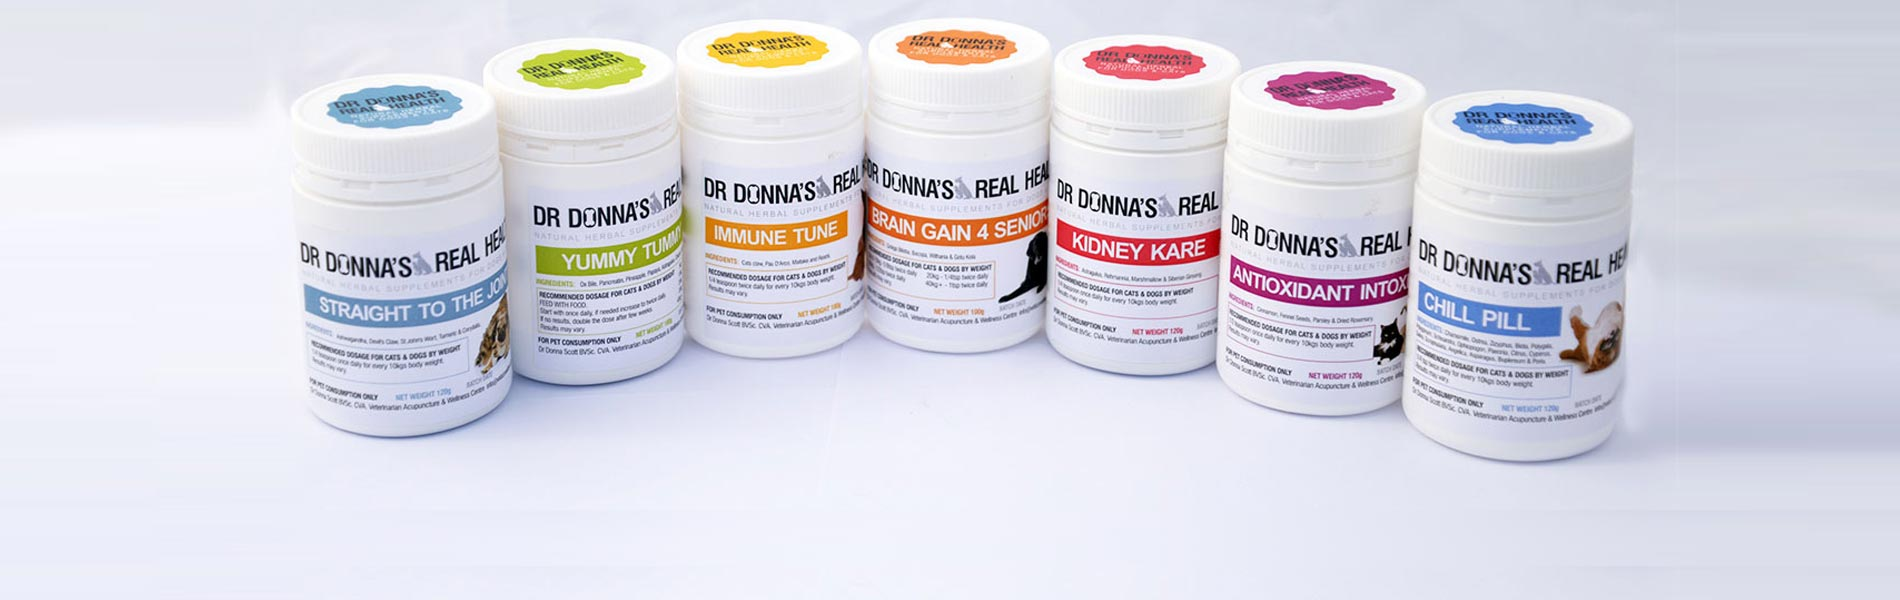 DR DONNA'S REAL HEALTH PRODUCTS